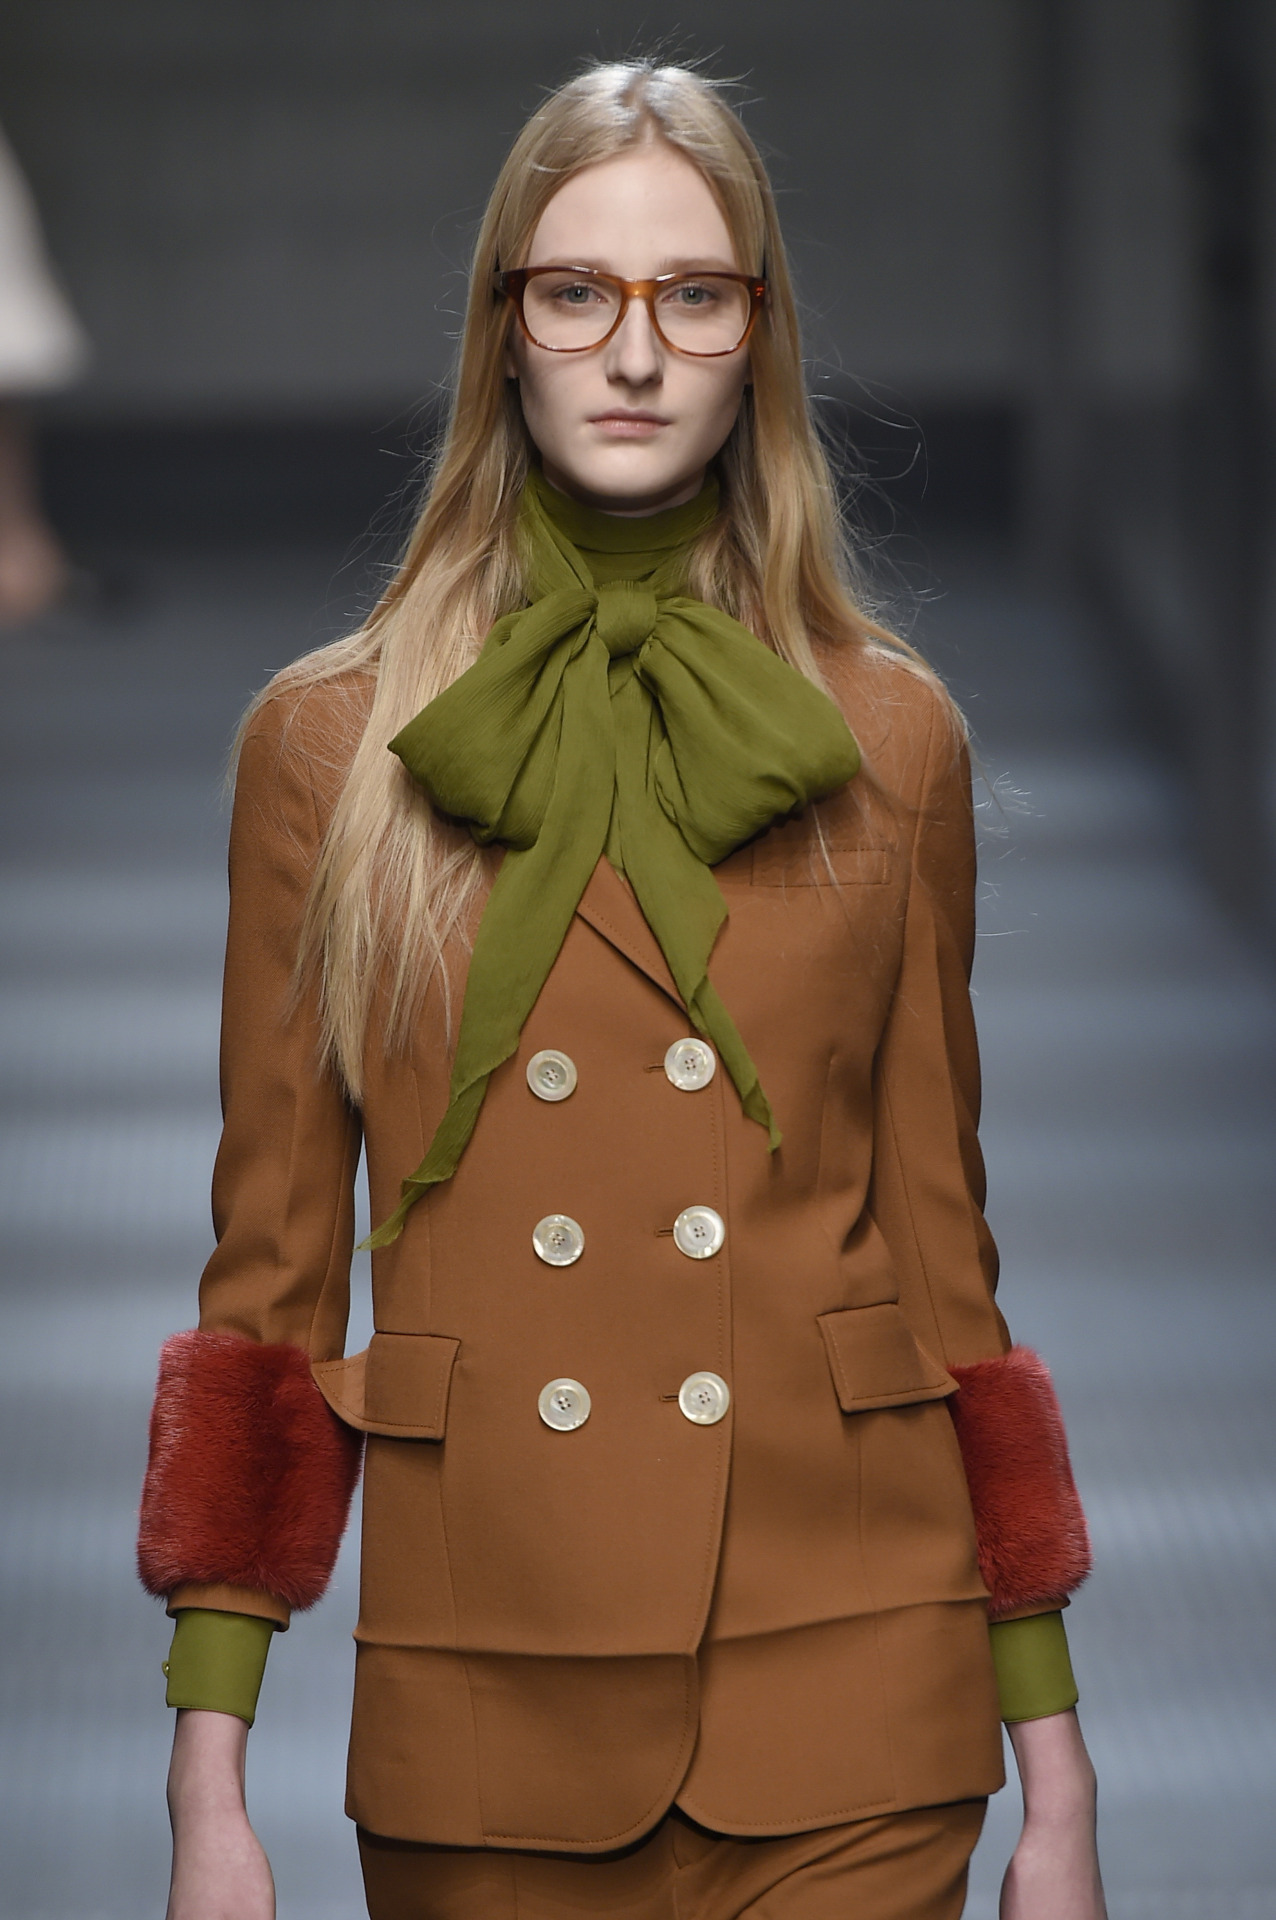 wgsn :     A touch of 70's geek chic at the  @gucci  #aw15 show #MFW